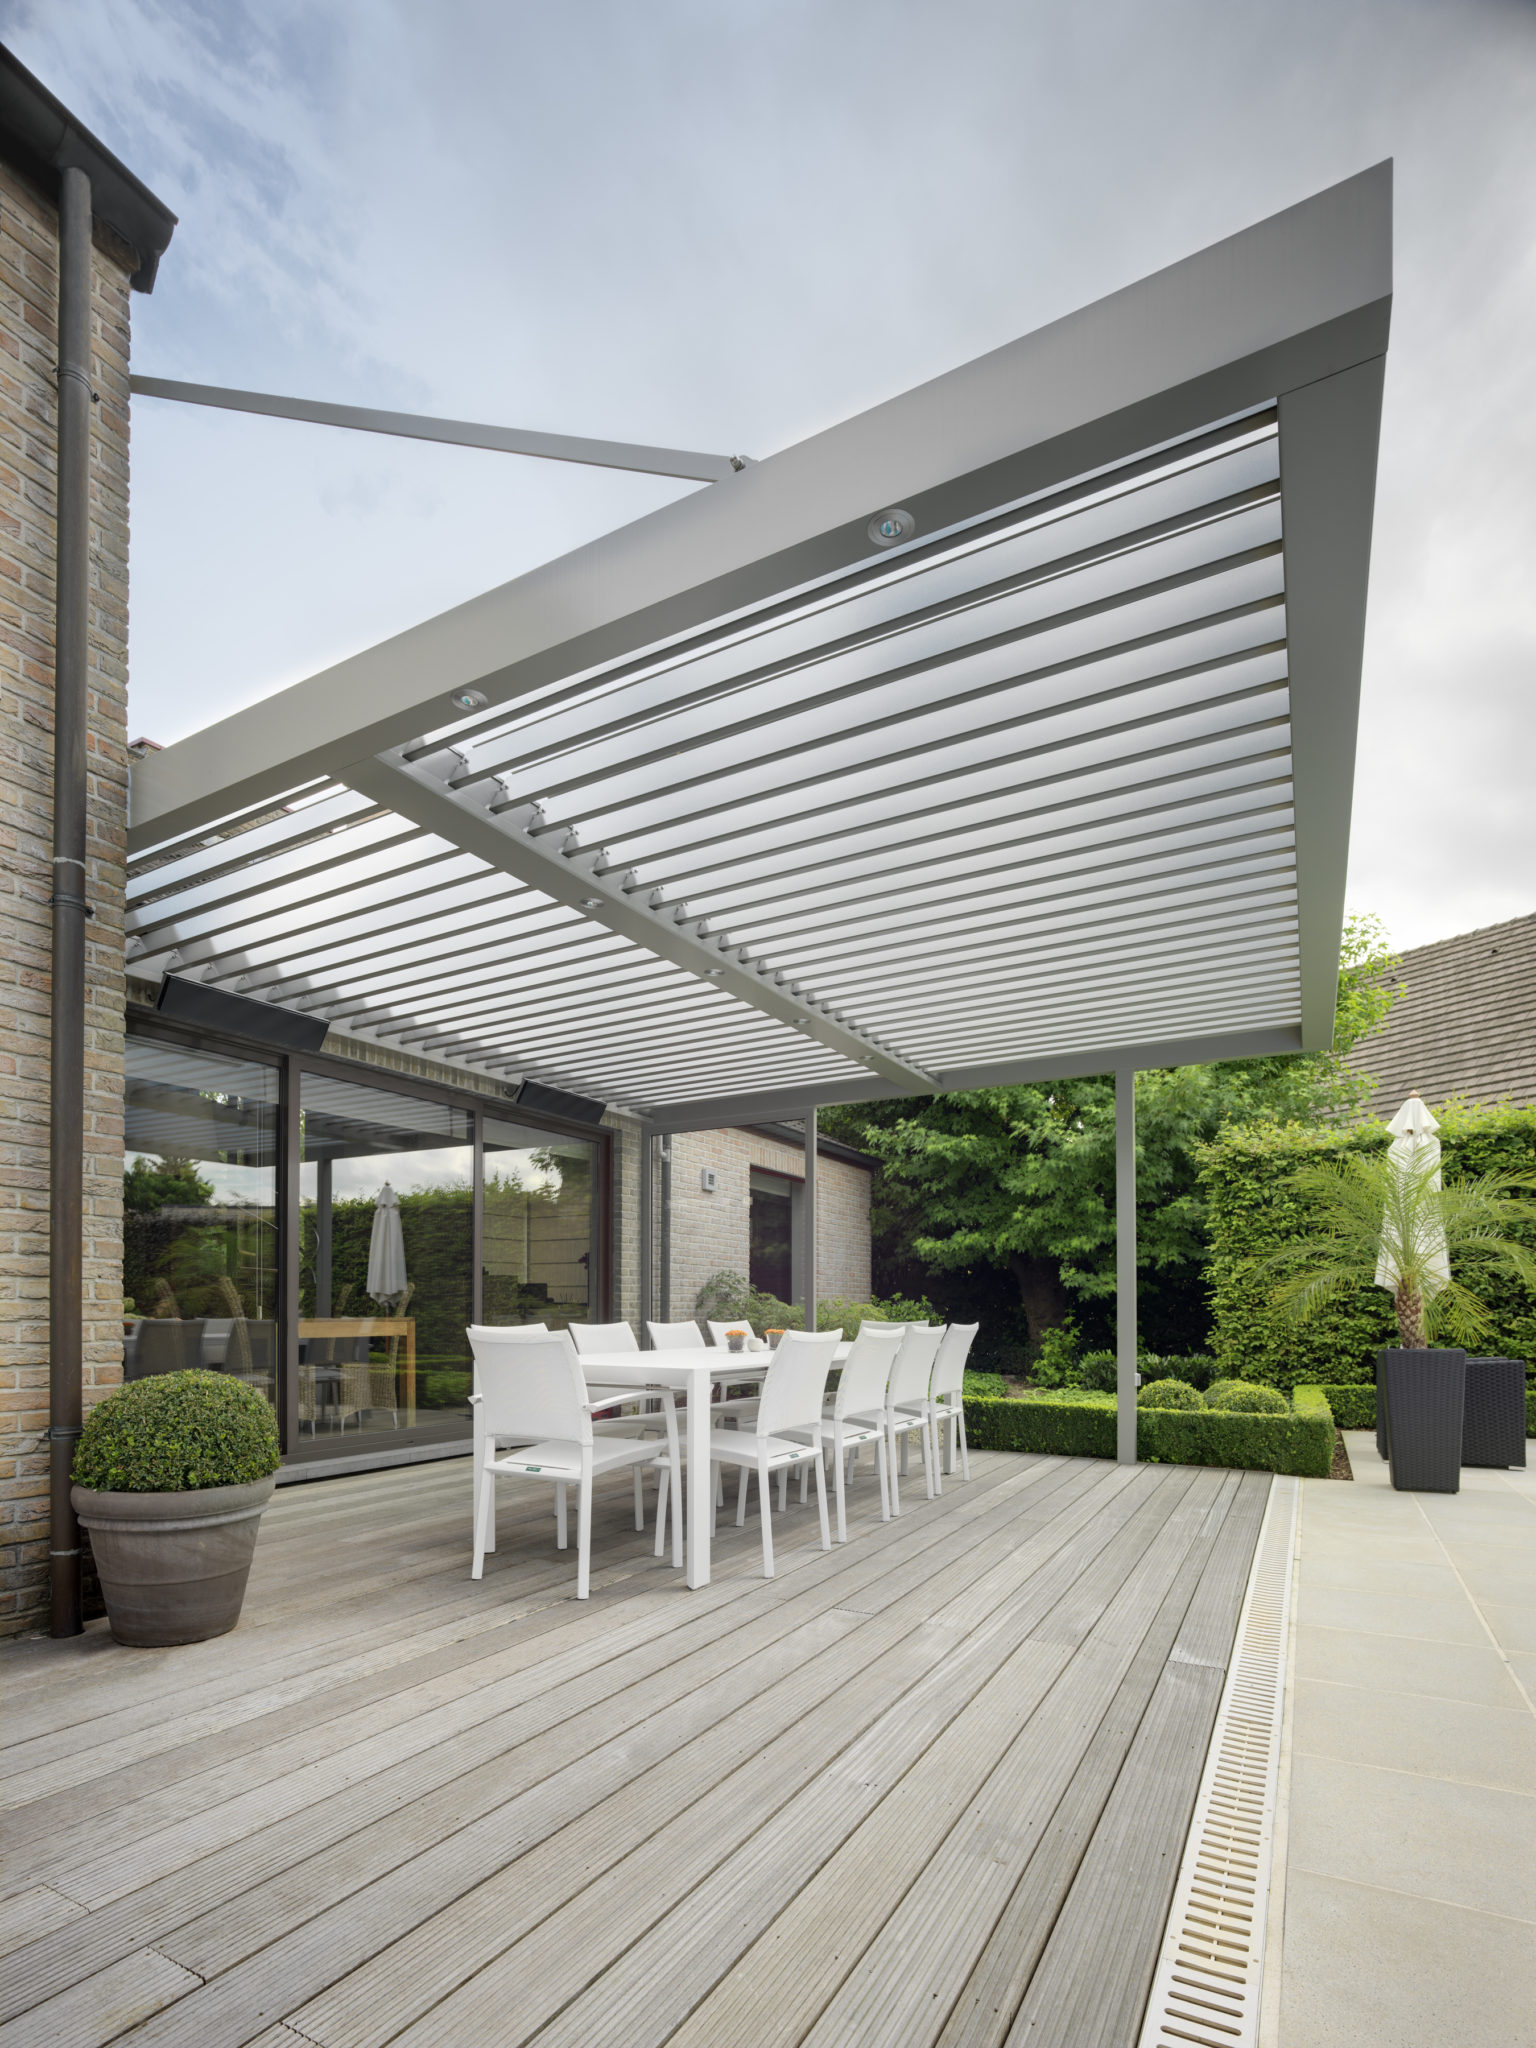 IQ Louvre Roof over glass patio doors to provide solar shading